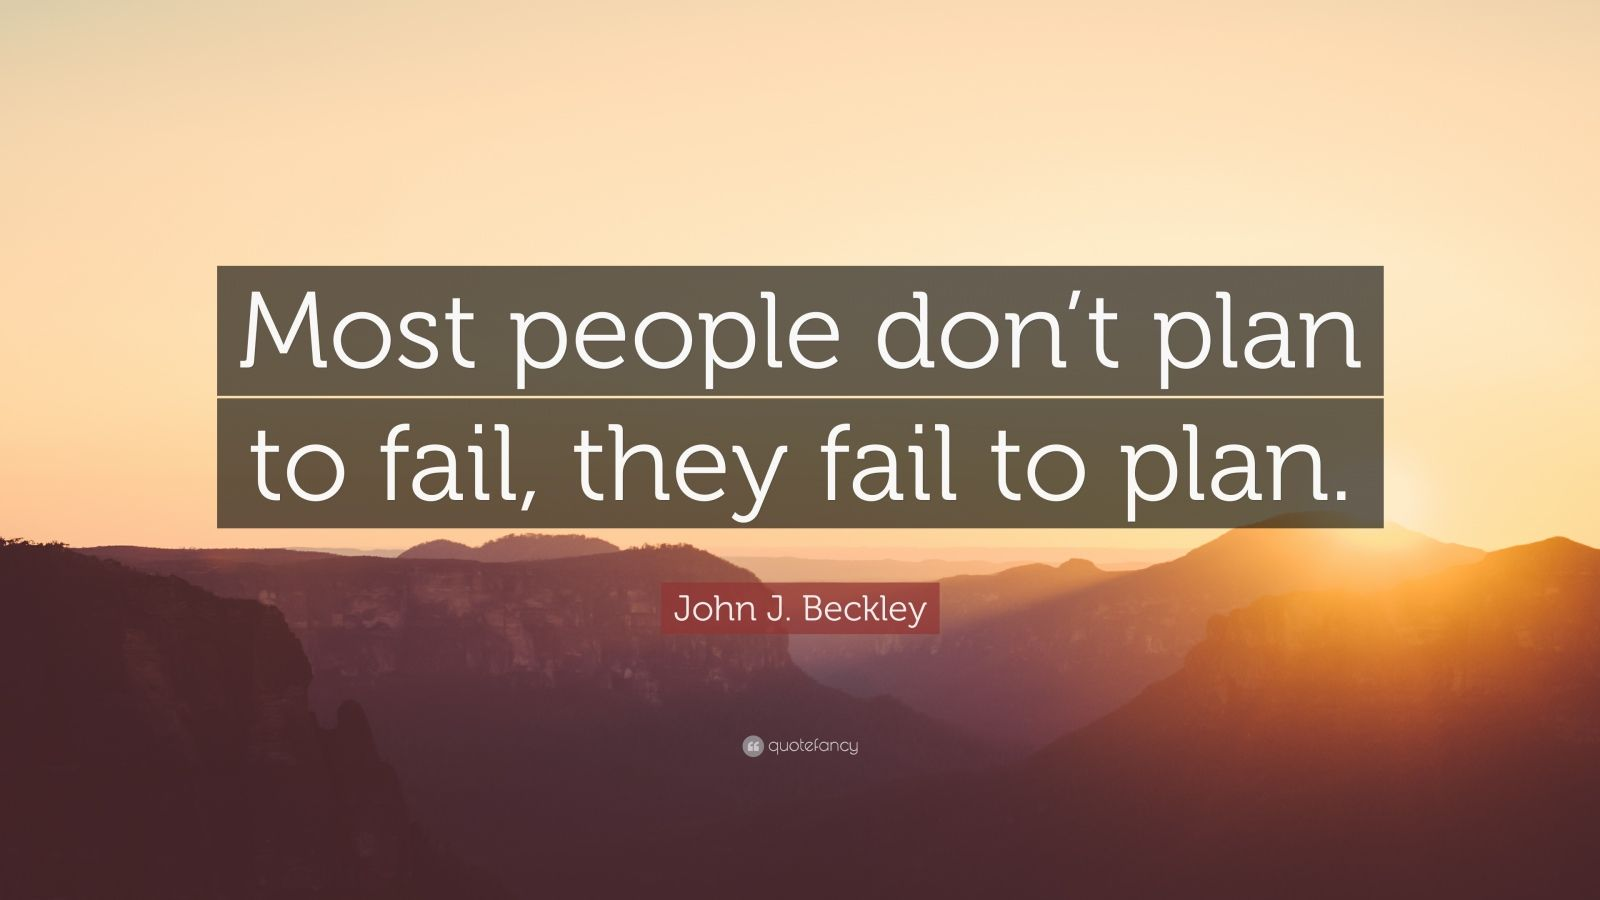 Steve Jobs Motivational Quotes Wallpaper John J Beckley Quote Most People Don T Plan To Fail